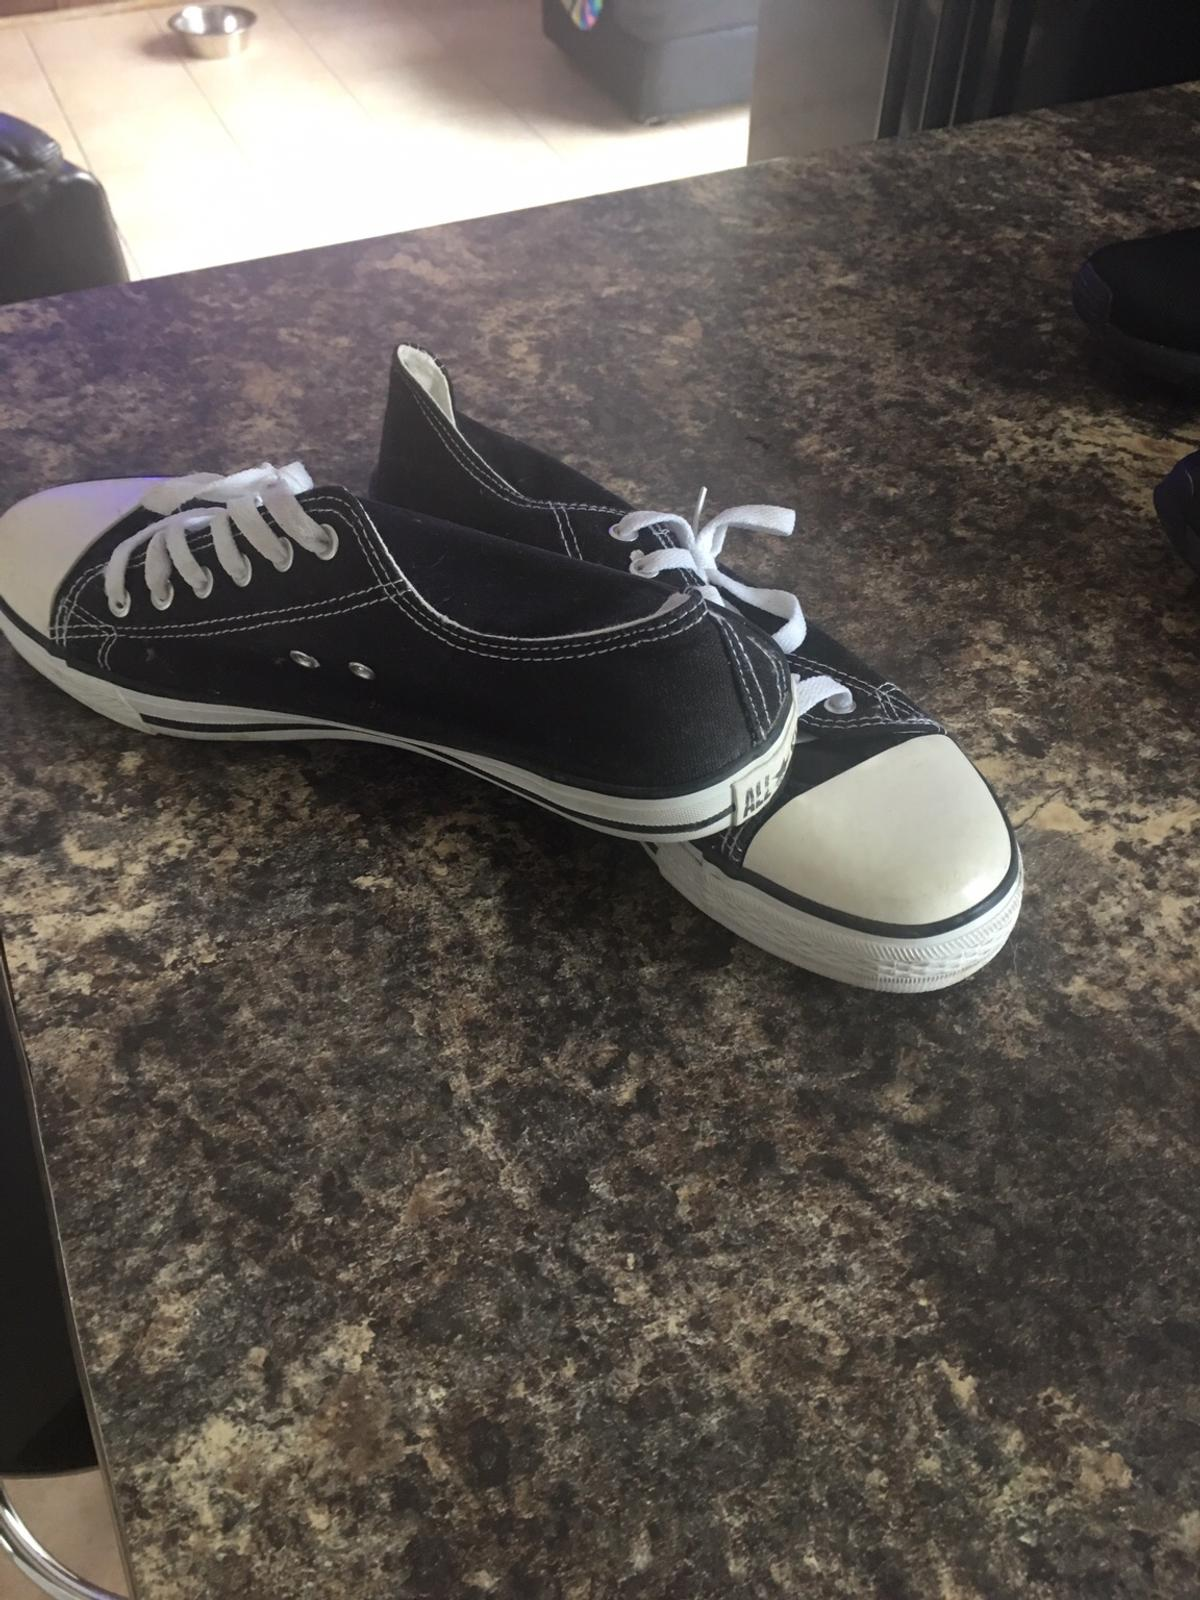 Men's pumps size12 but really size 10 worn once